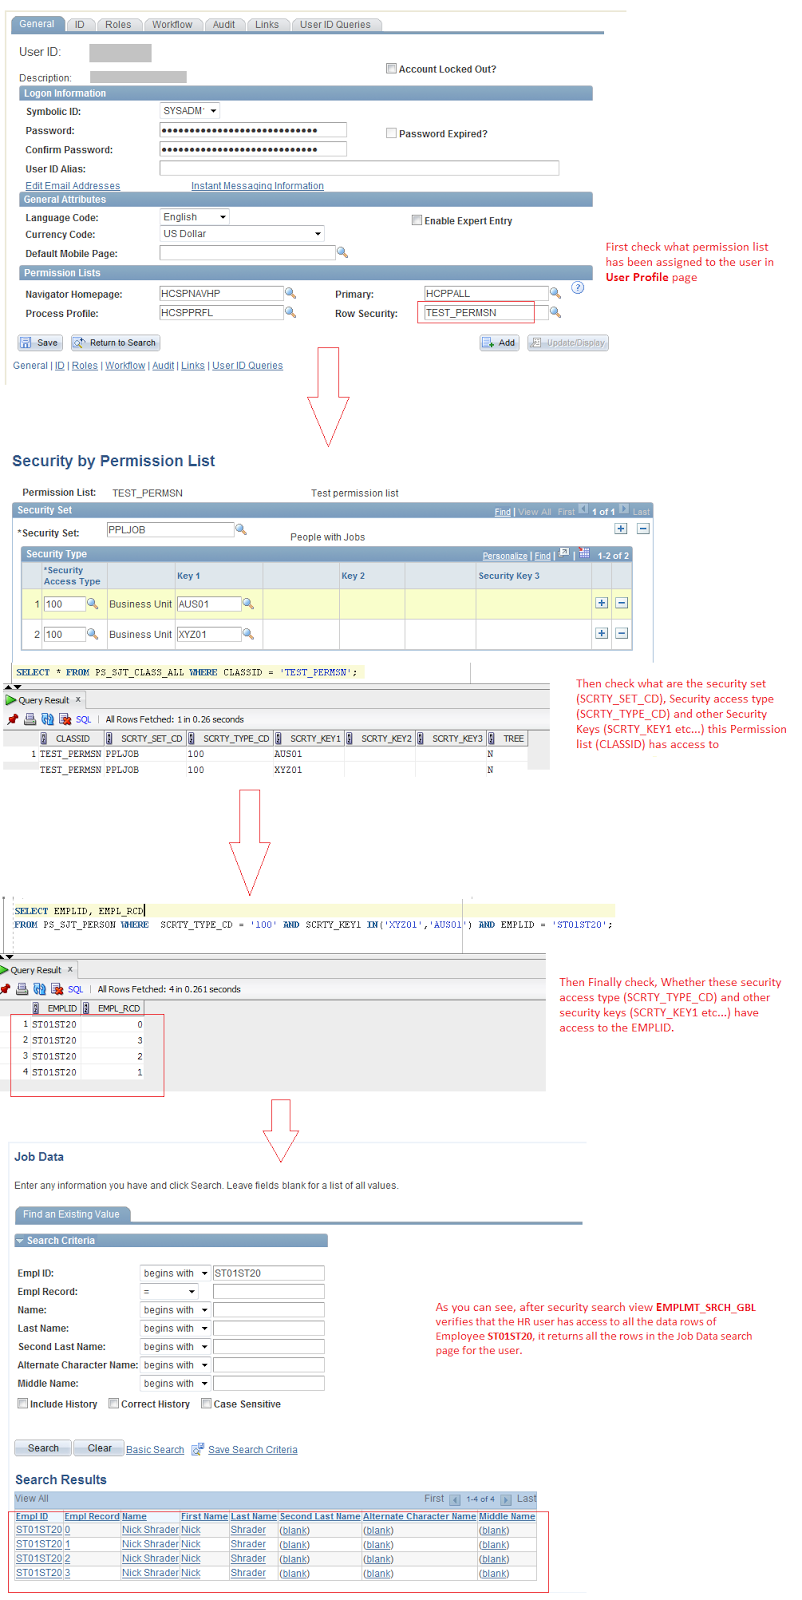 PeopleSoft Blog on HRMS Key Concepts: Peoplesoft Row Level